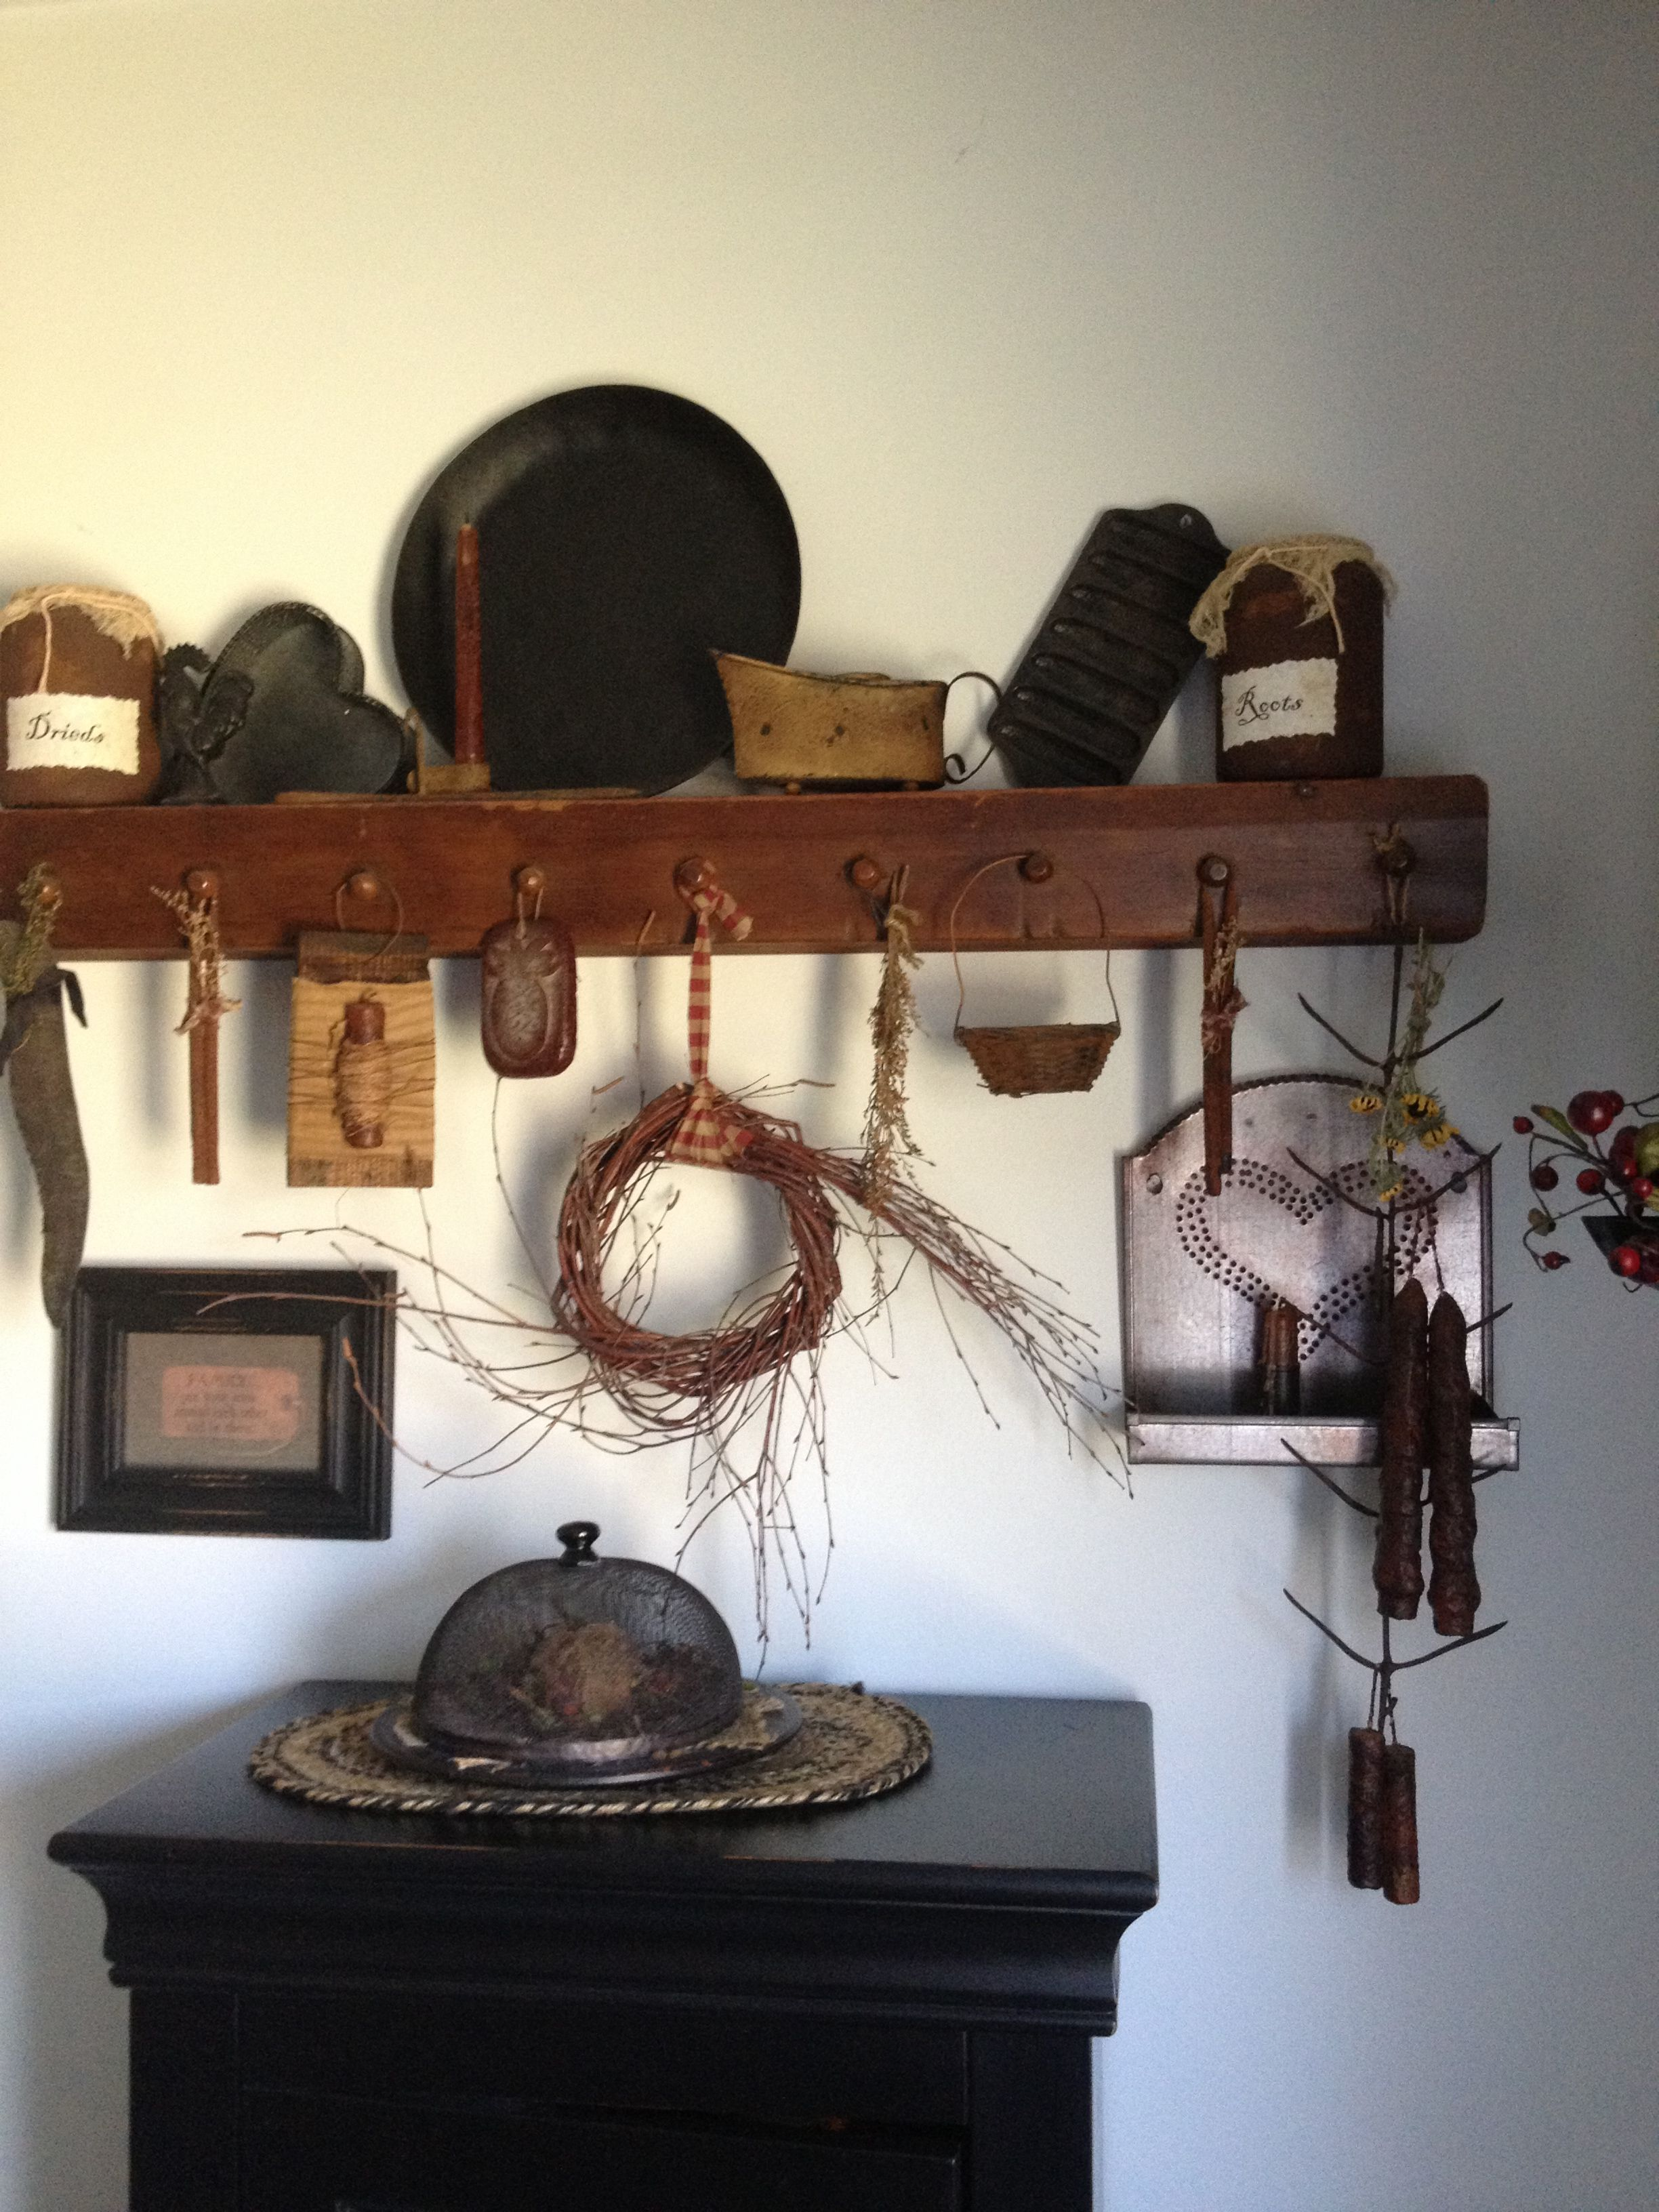 Rope bed rail shelf Barn wood crafts, Decor, Home decor